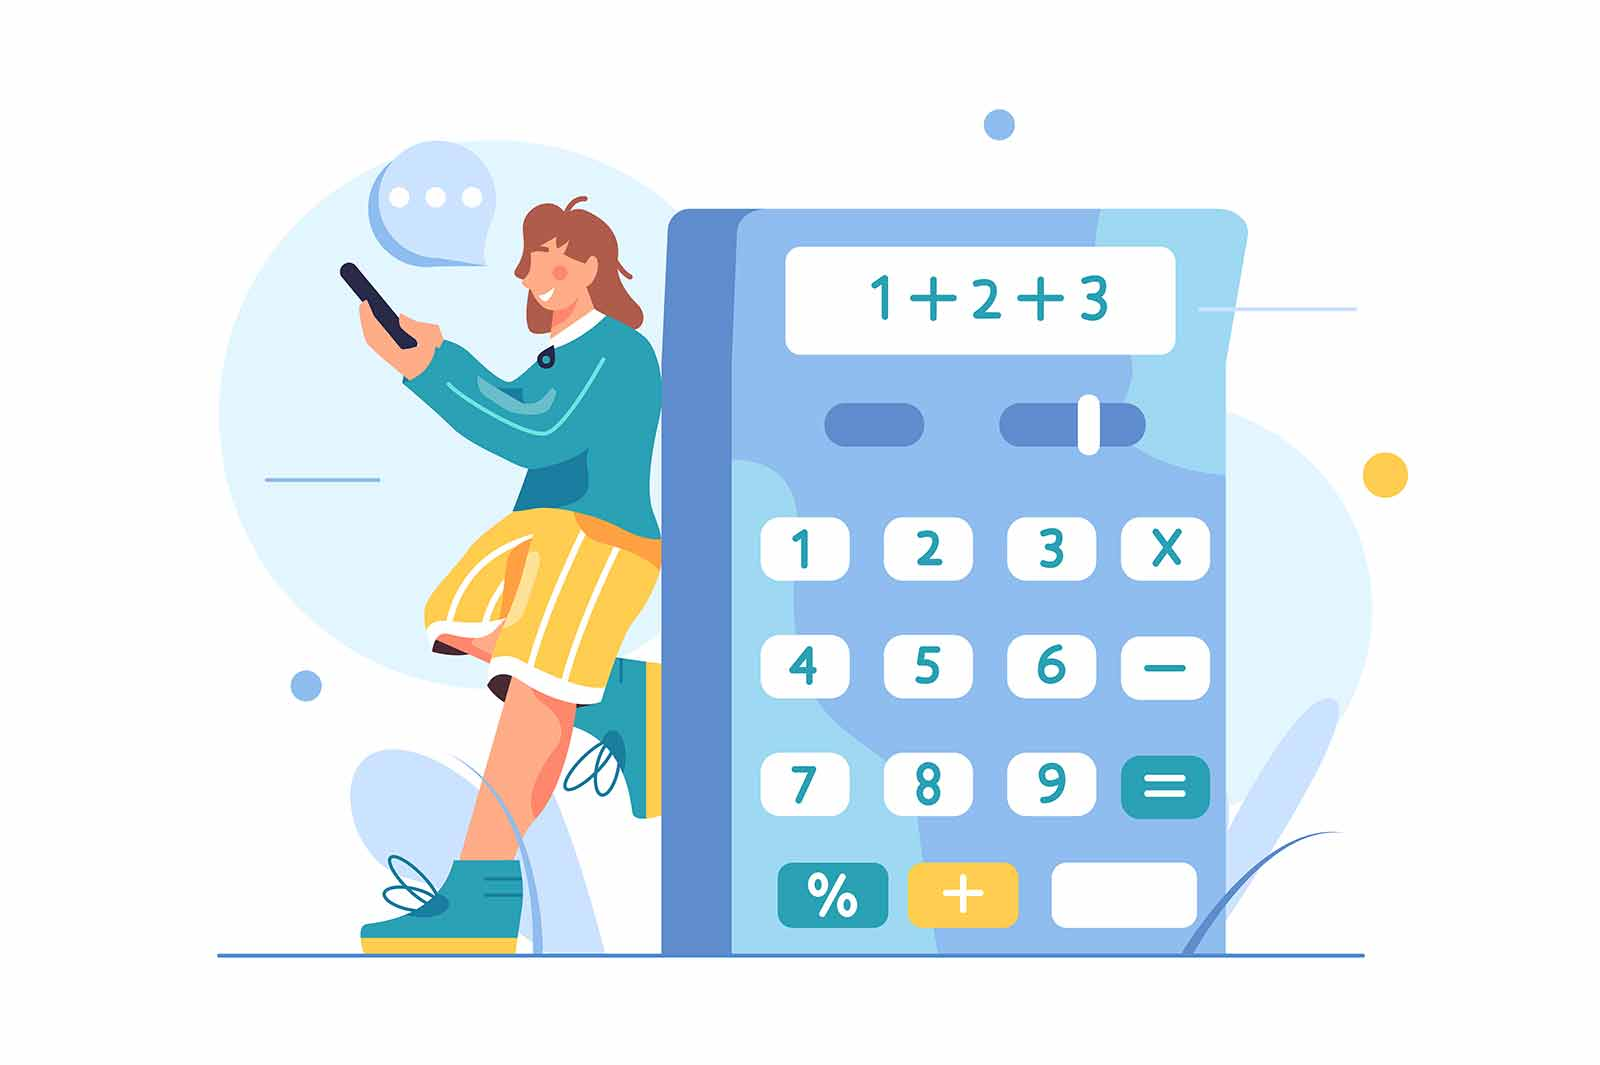 Woman counting numbers on a big calculator, woman holding a phone in her hands, isolated on white background, flat vector illustration